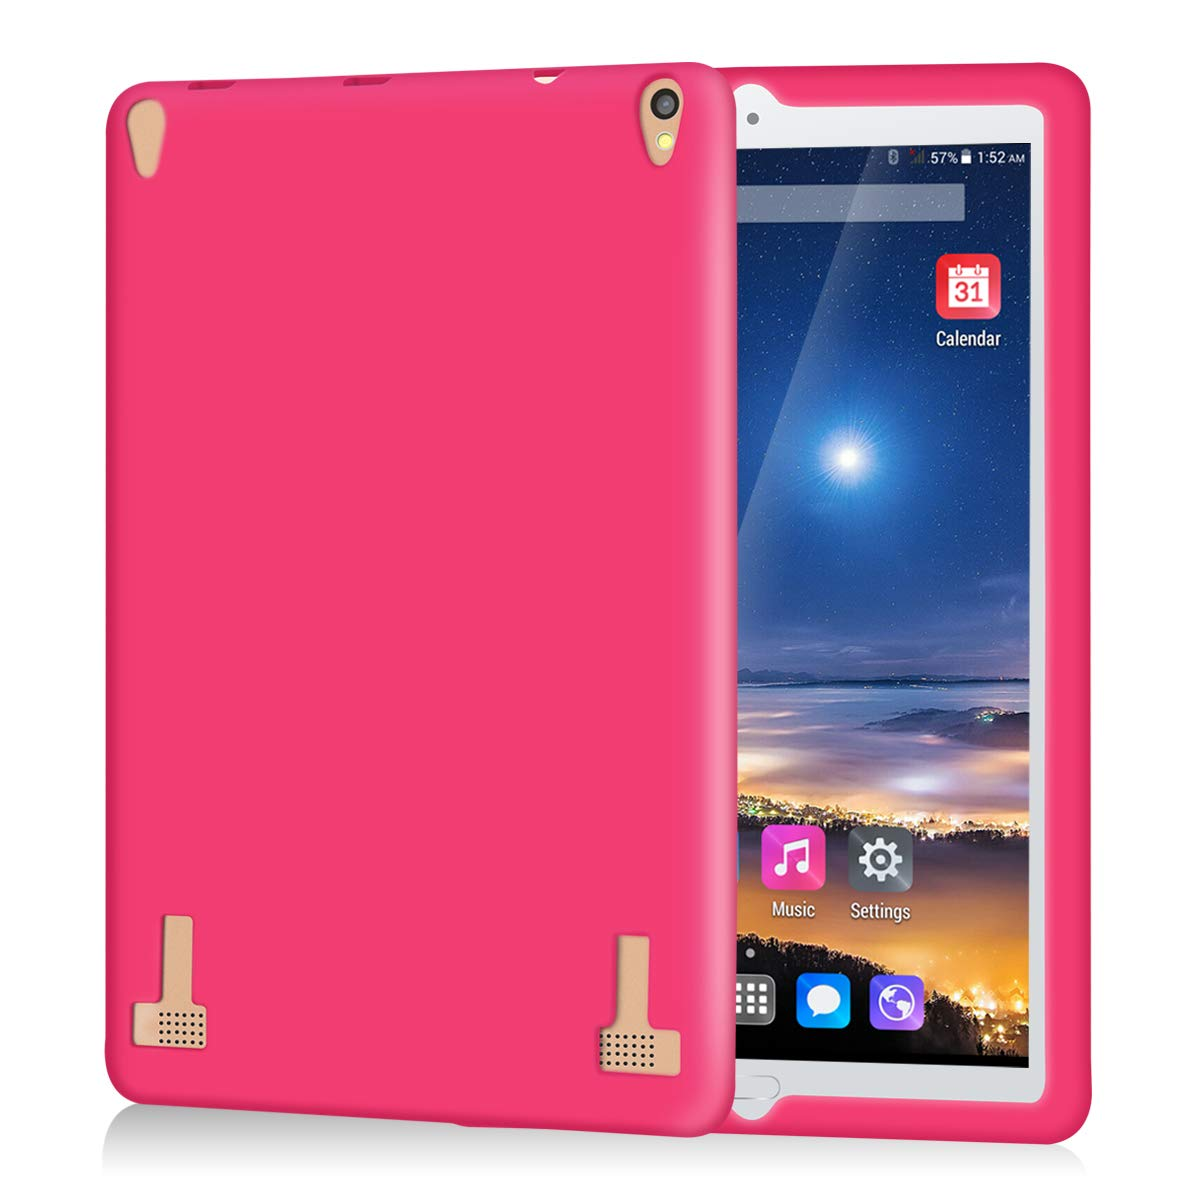 Kivors 10.1 inch Tablet Case Cover, Shock Absorbing Lightweight Silicone Case Protective Cover for Model A104//A103 tablet